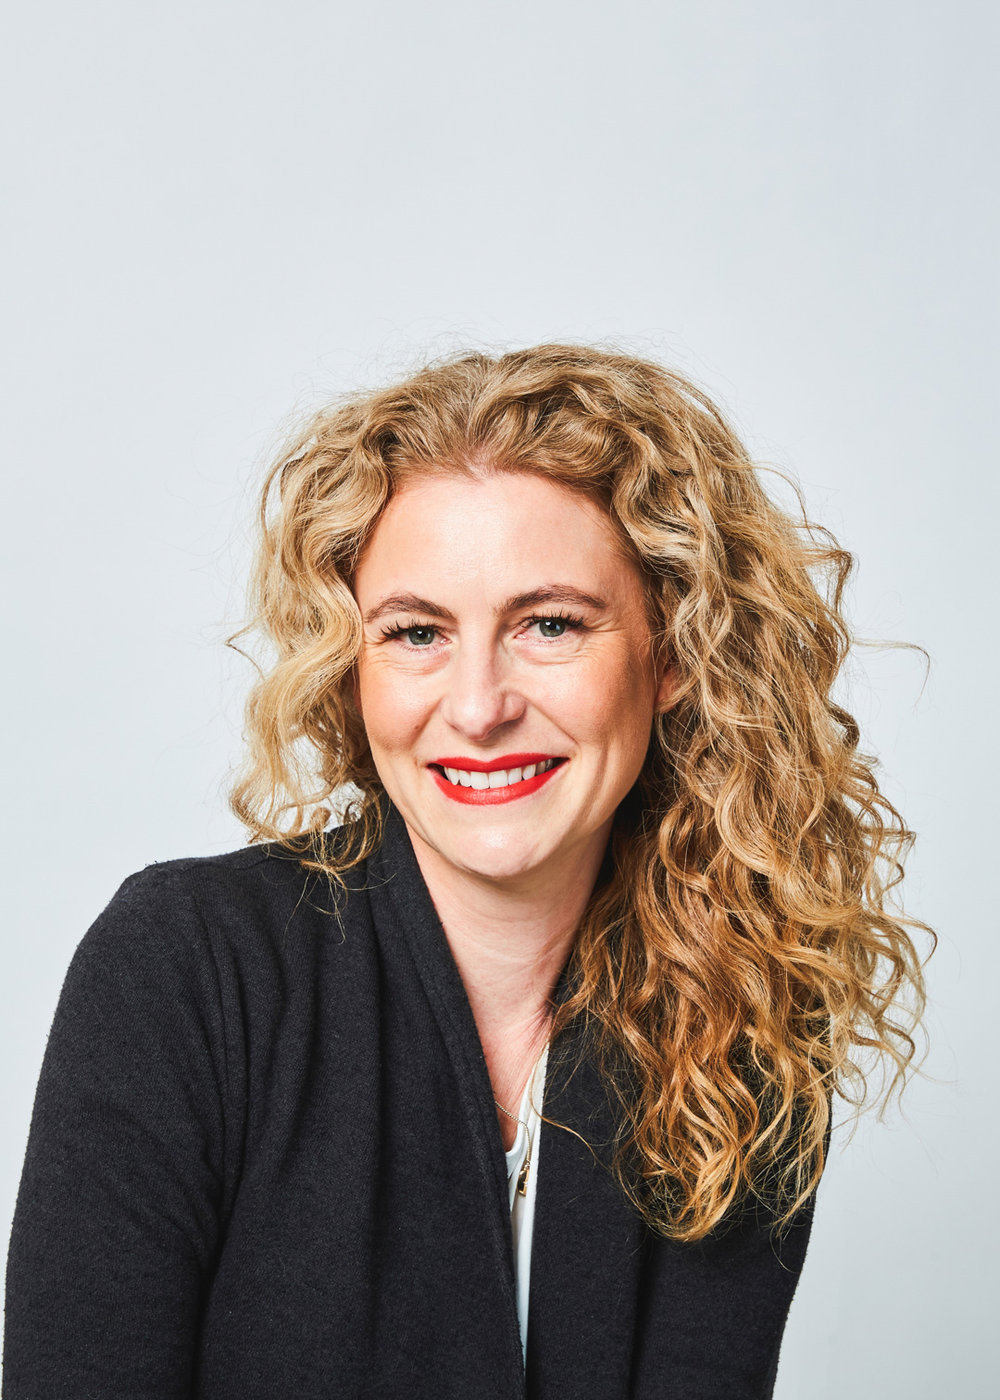 CASSANDRA - Cassandra brings 12 years of industry experience to our salon. She offers cuts and colors and is an absolute genius when it comes to working with curly or unruly hair. Your mane will have never before been so tame!Haircuts - $125Blowdry - $95Single Process Color - $125Special Effects - $125Full Balayage - $220Partial Balayage - $185Full Foil - $225Partial Foil - $185